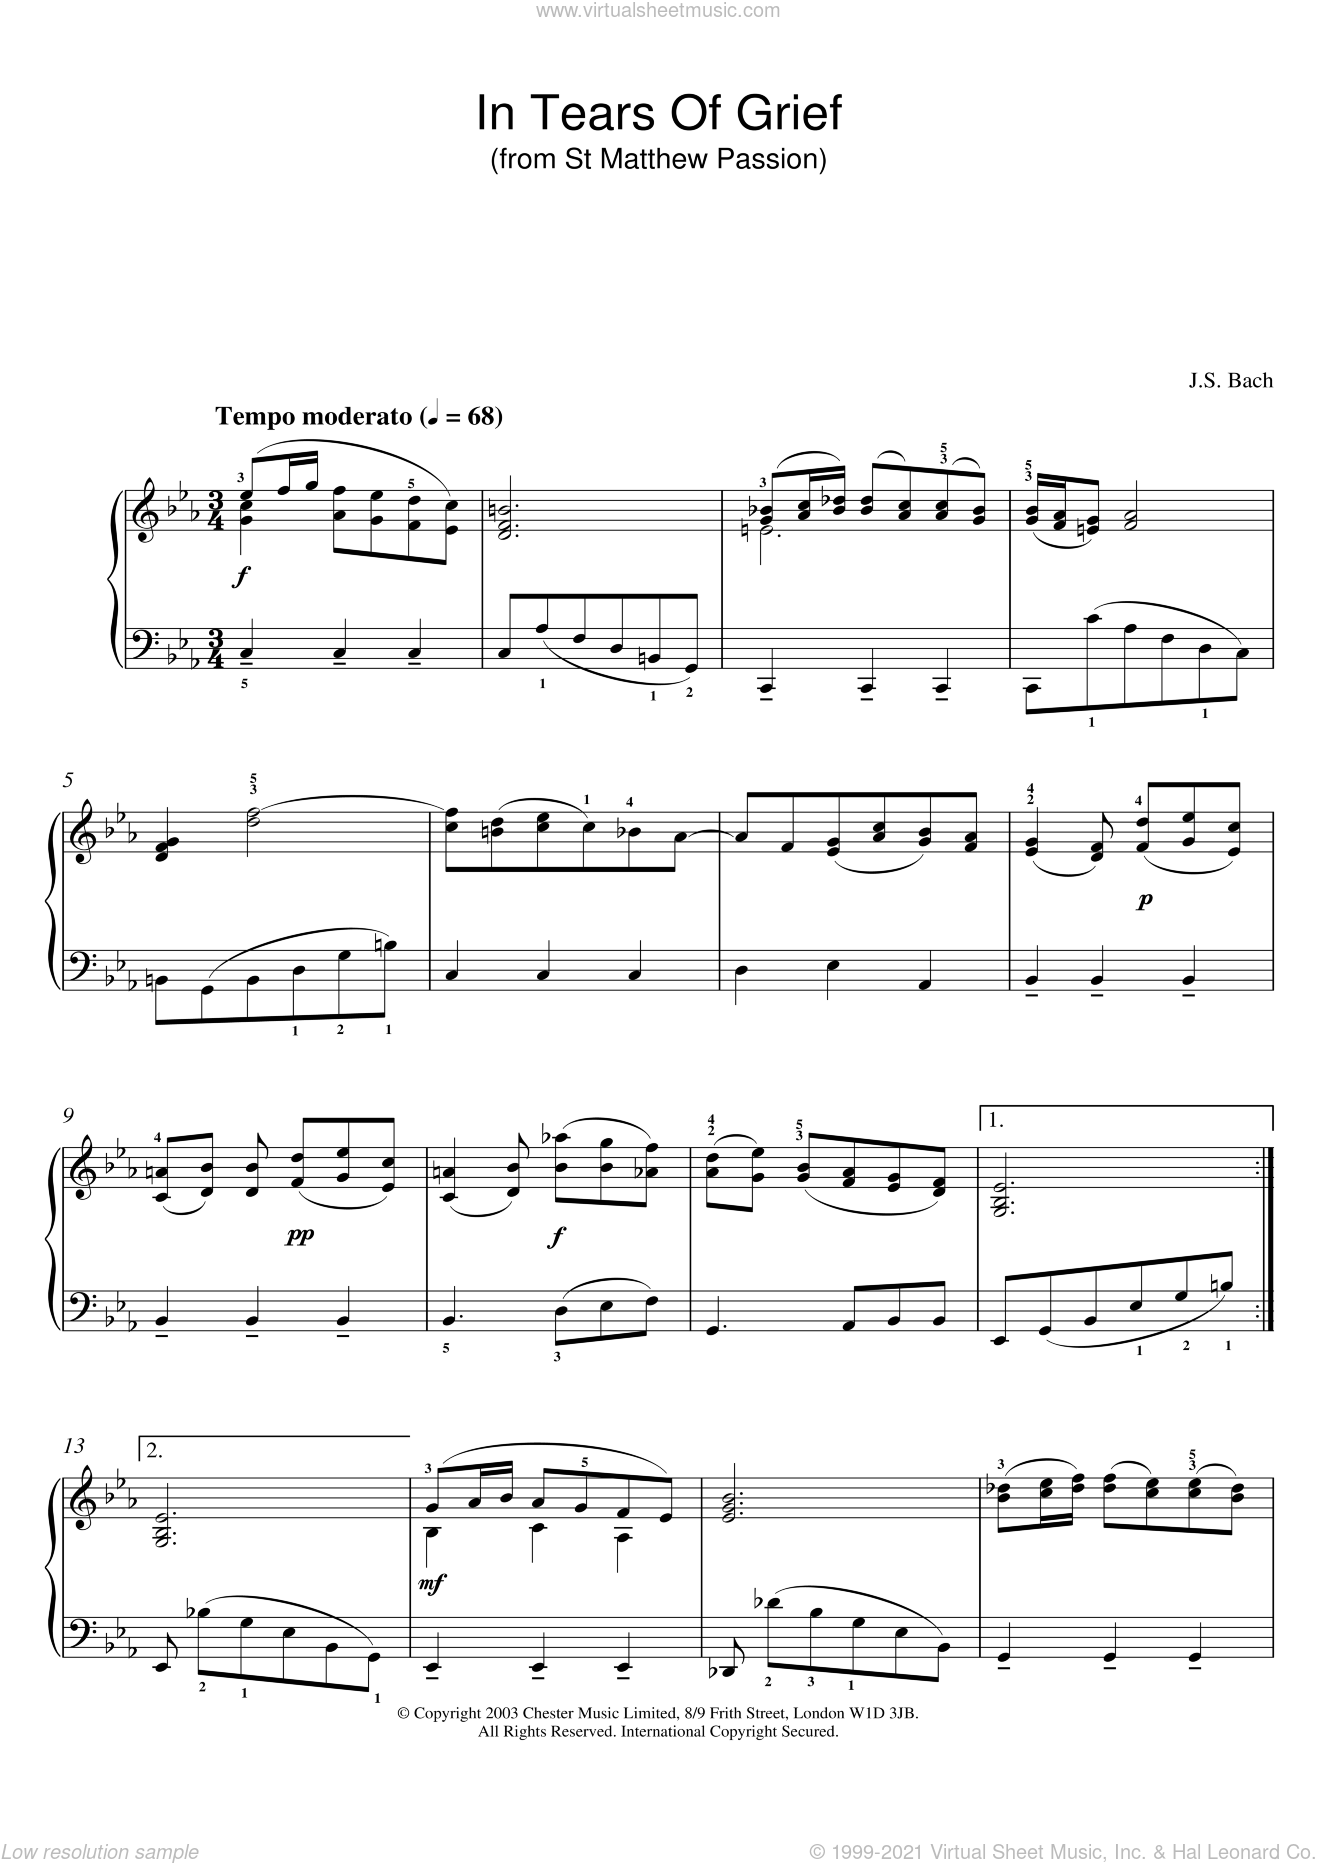 In Tears Of Grief (from St Matthew Passion) sheet music for piano solo by Johann Sebastian Bach. Score Image Preview.